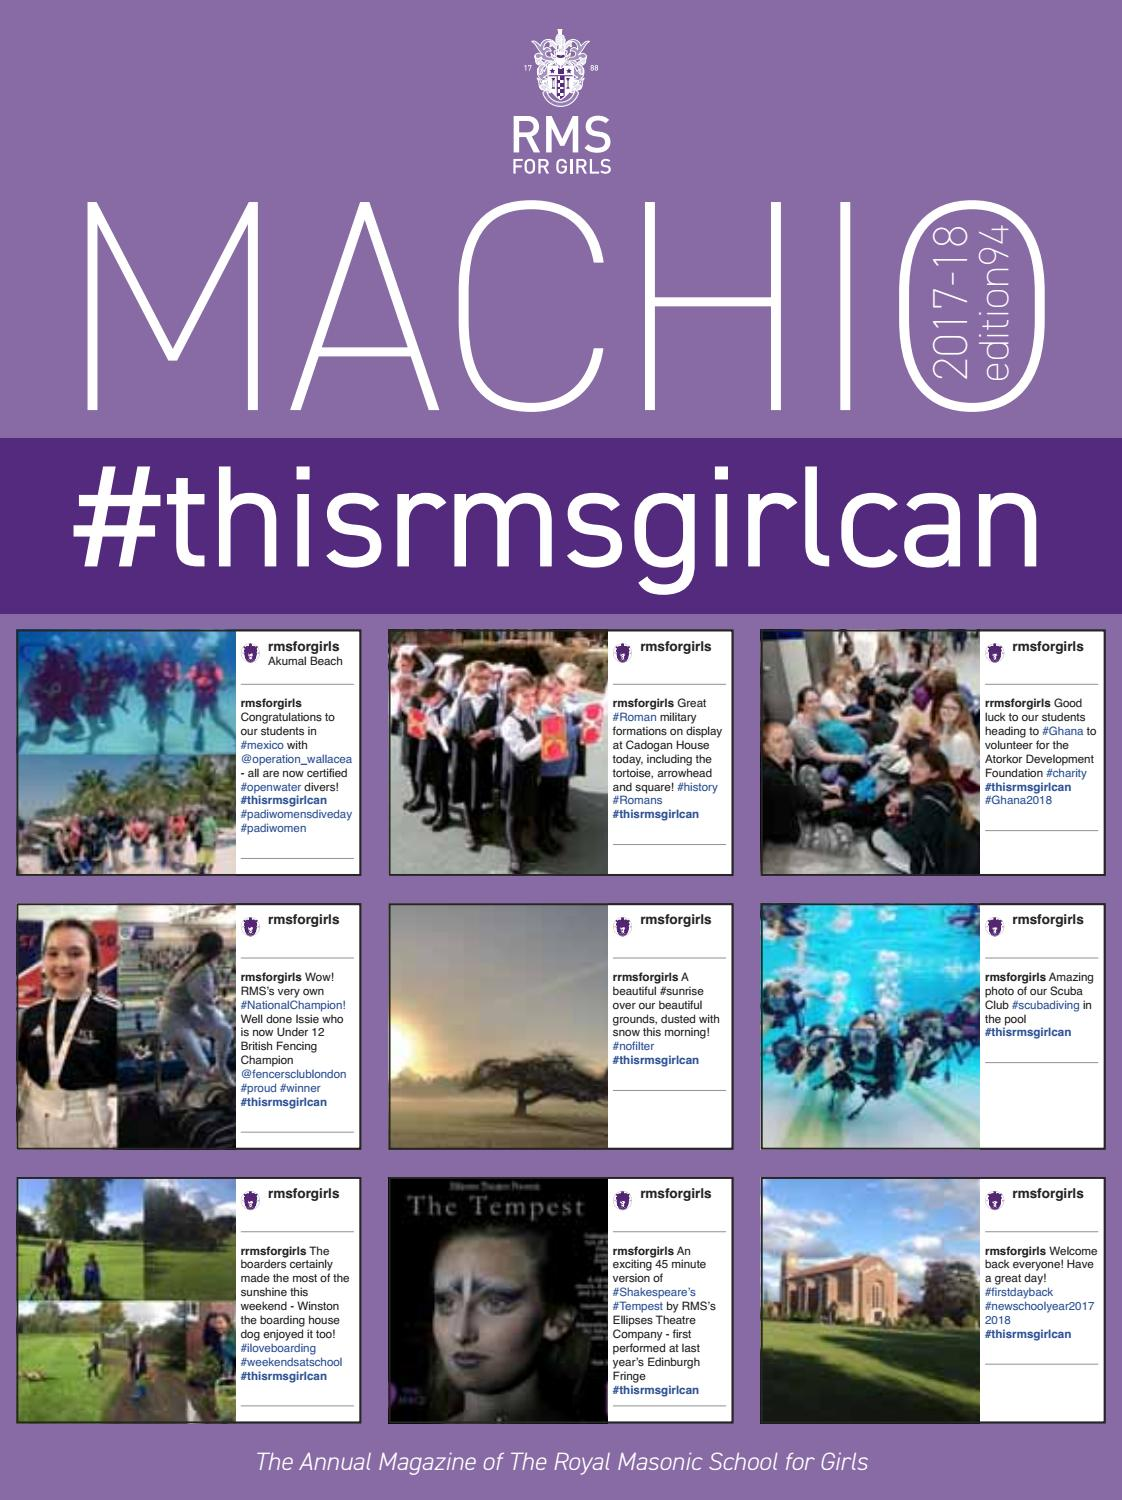 c1e5cd311859 Machio 2017-18 by The Royal Masonic School for Girls - issuu